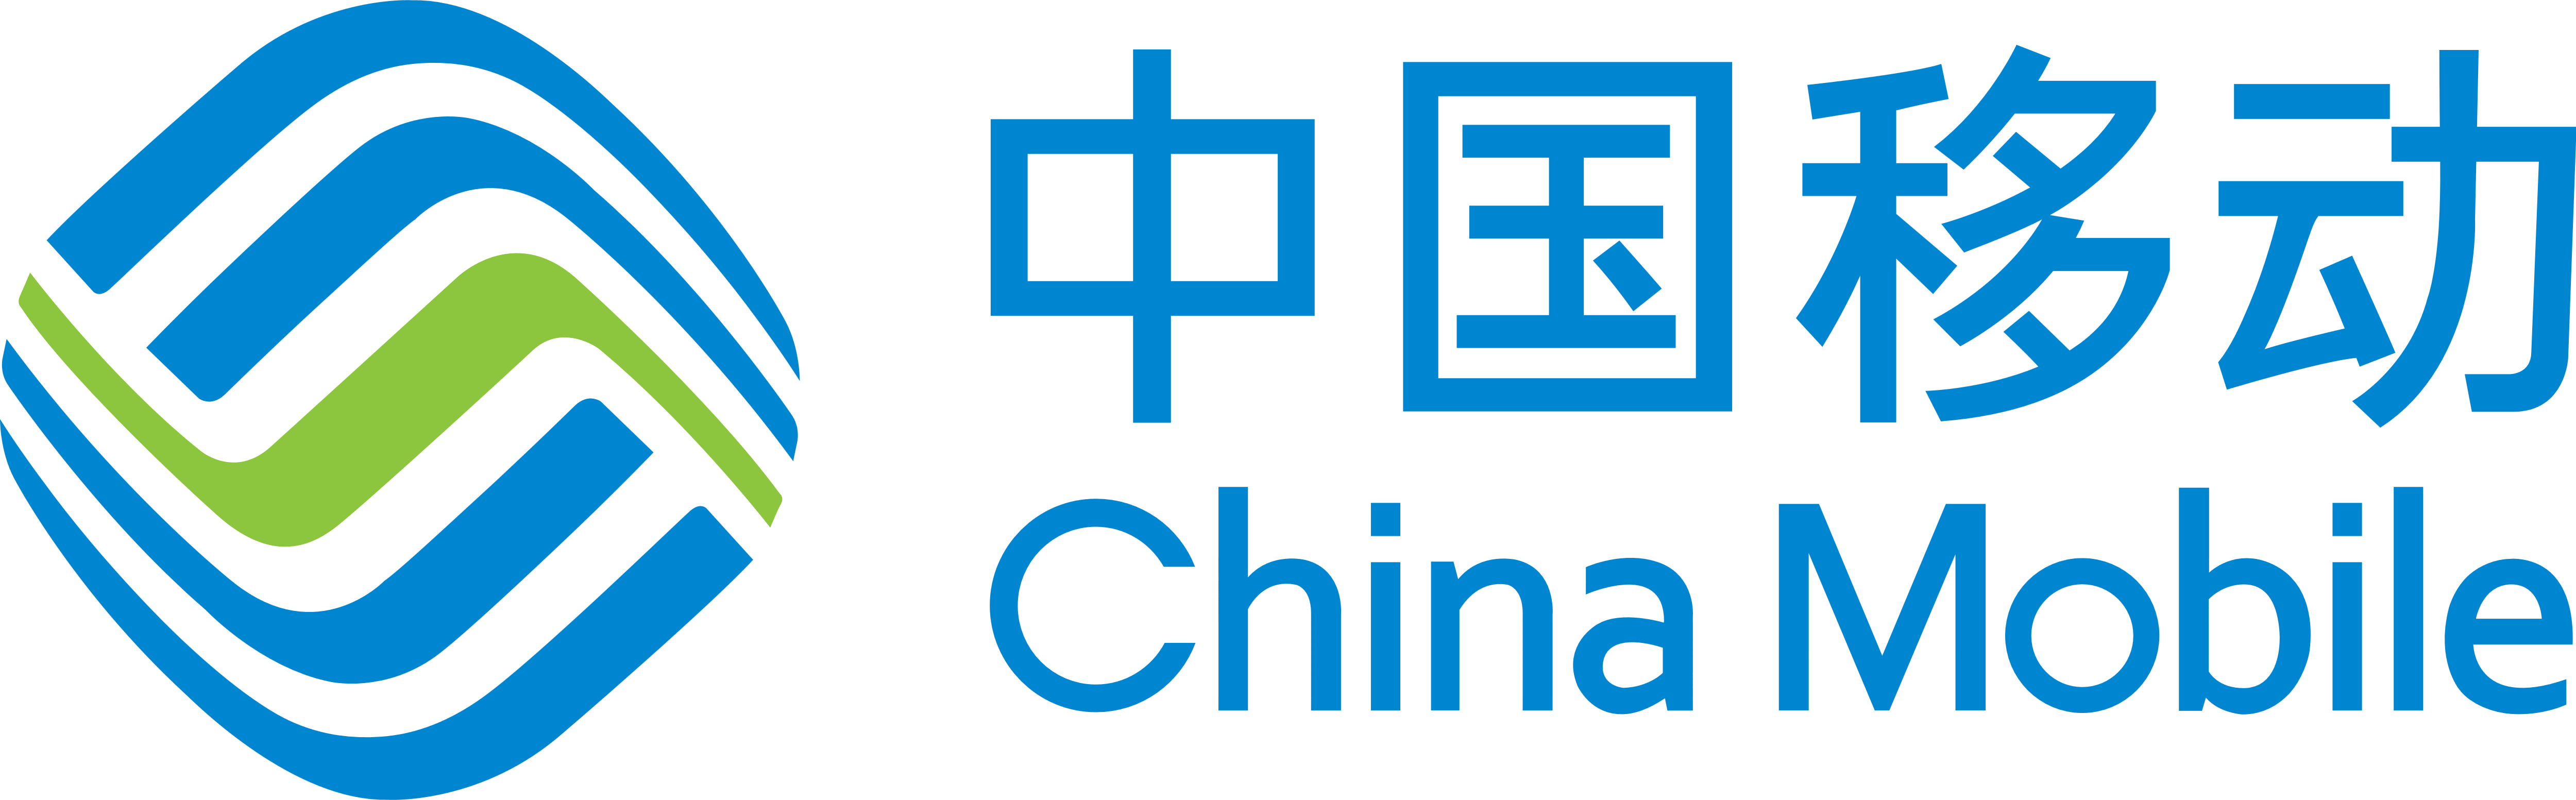 China mobile logo download free clipart with a transparent.